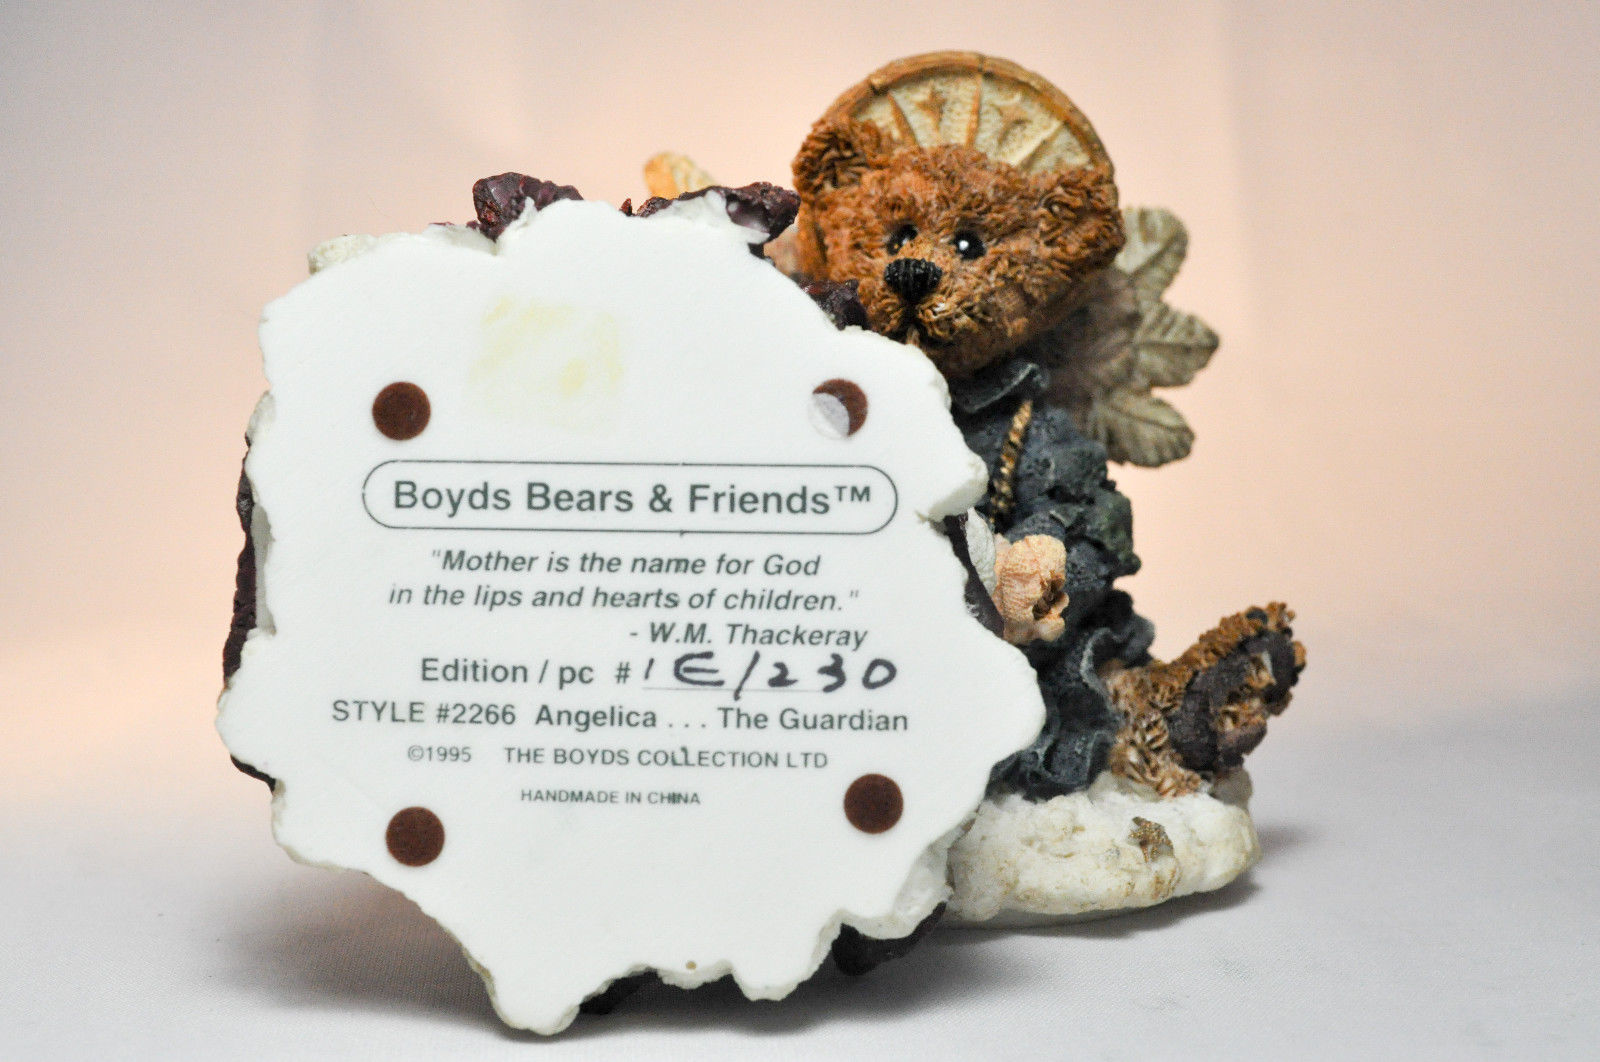 Boyds Bears: Angelica The Guardian - Style 2266 - First Edition 1E/230 - Trinket image 3